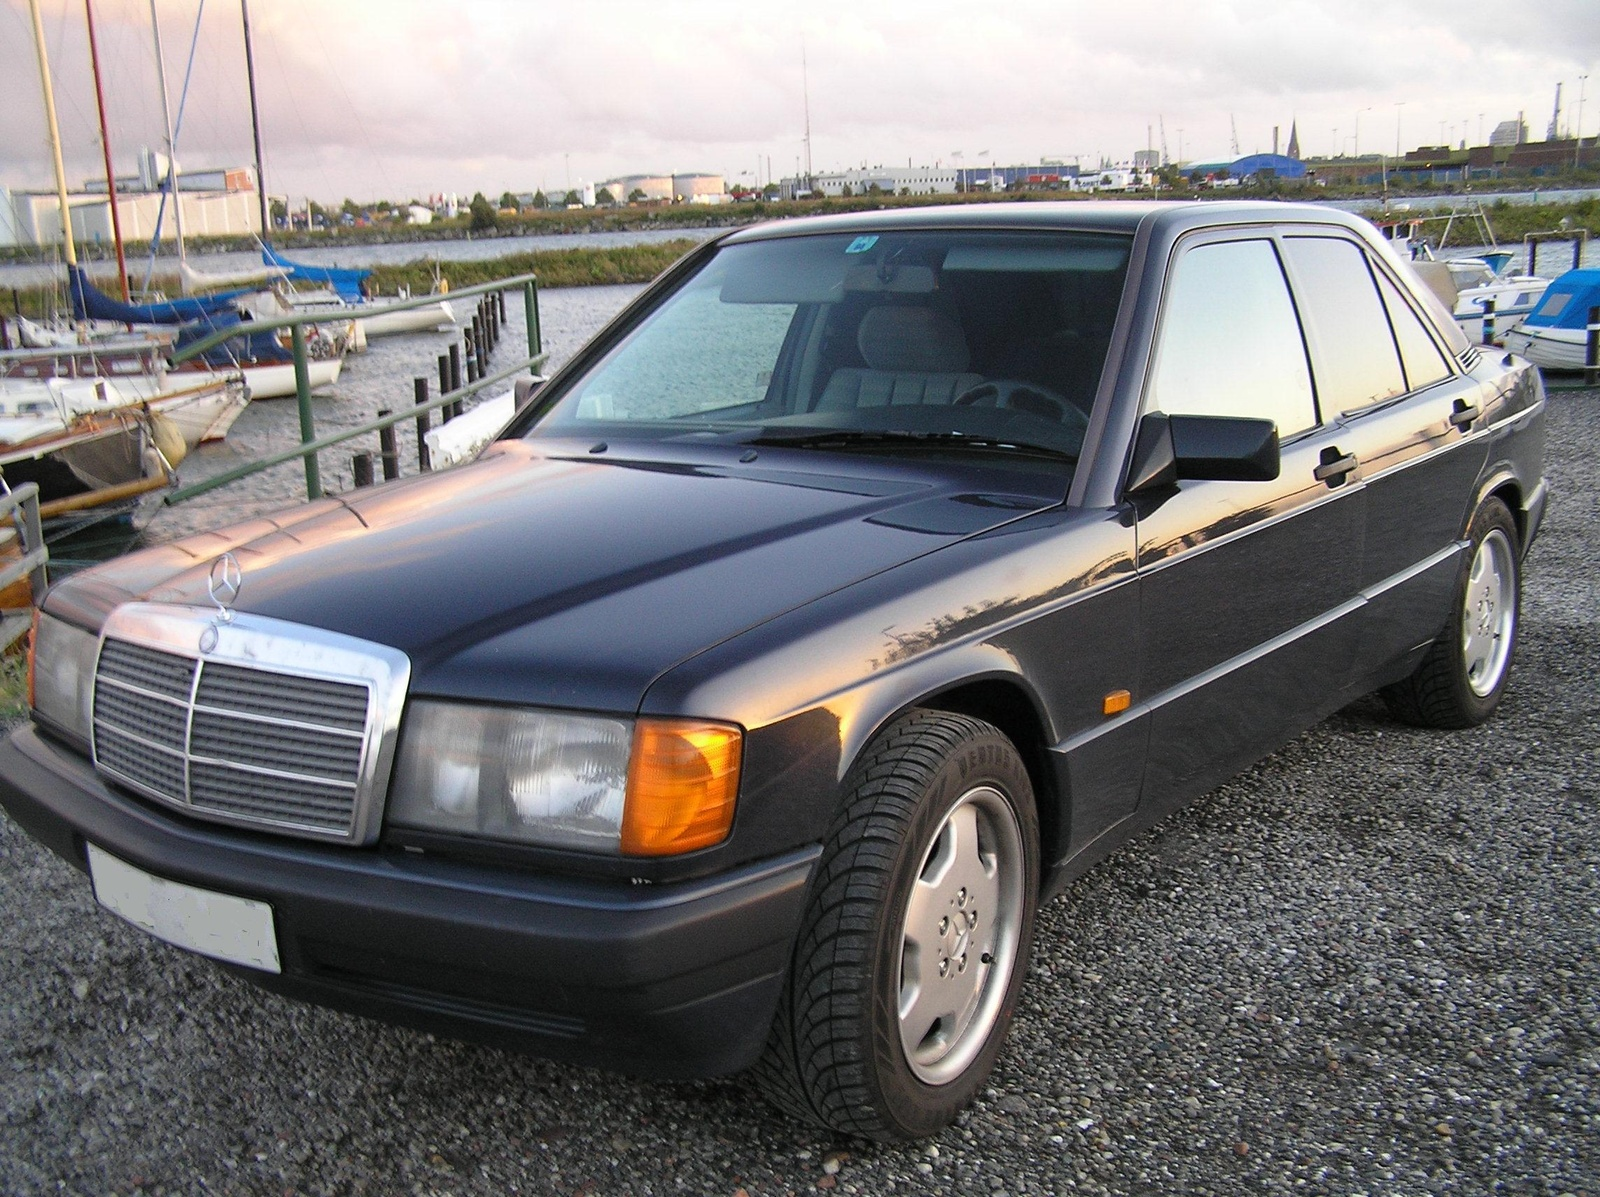 1991 mercedes benz 190 class pictures cargurus for 1991 mercedes benz